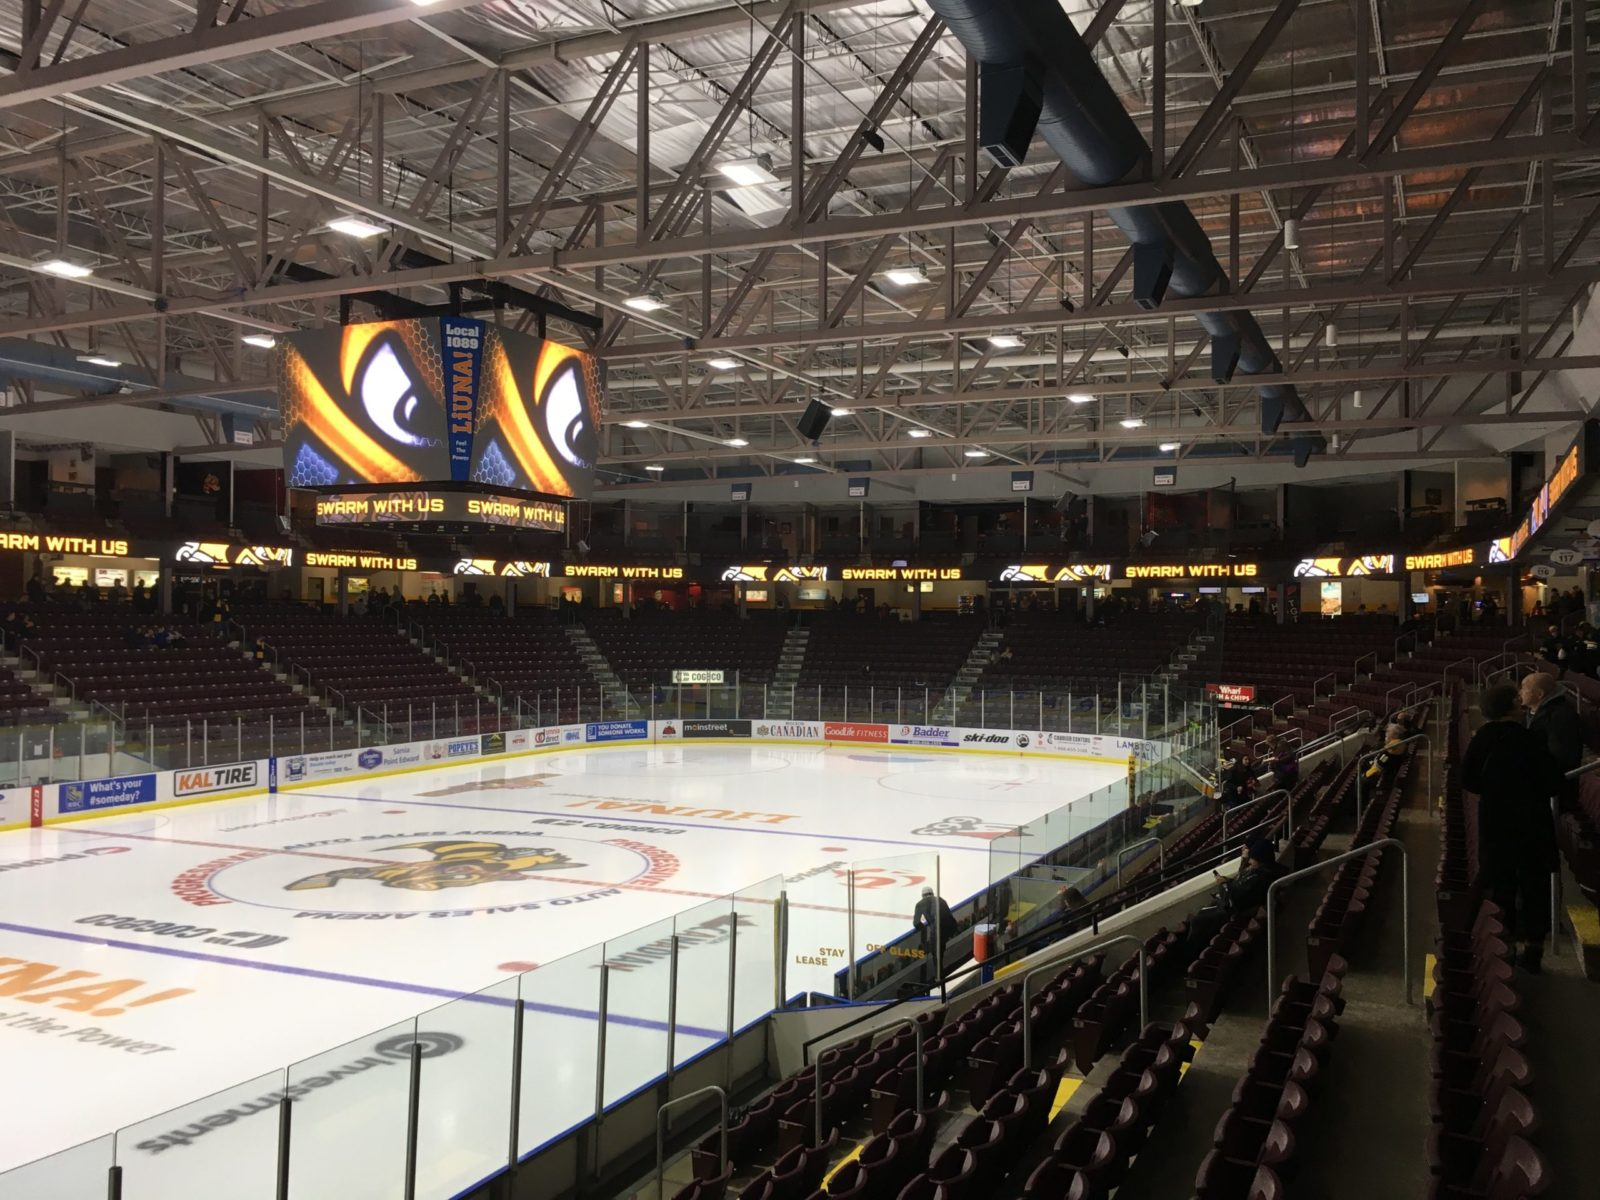 The Sarnia Stadium displaying a new OES scoreboard above a hockey rink.